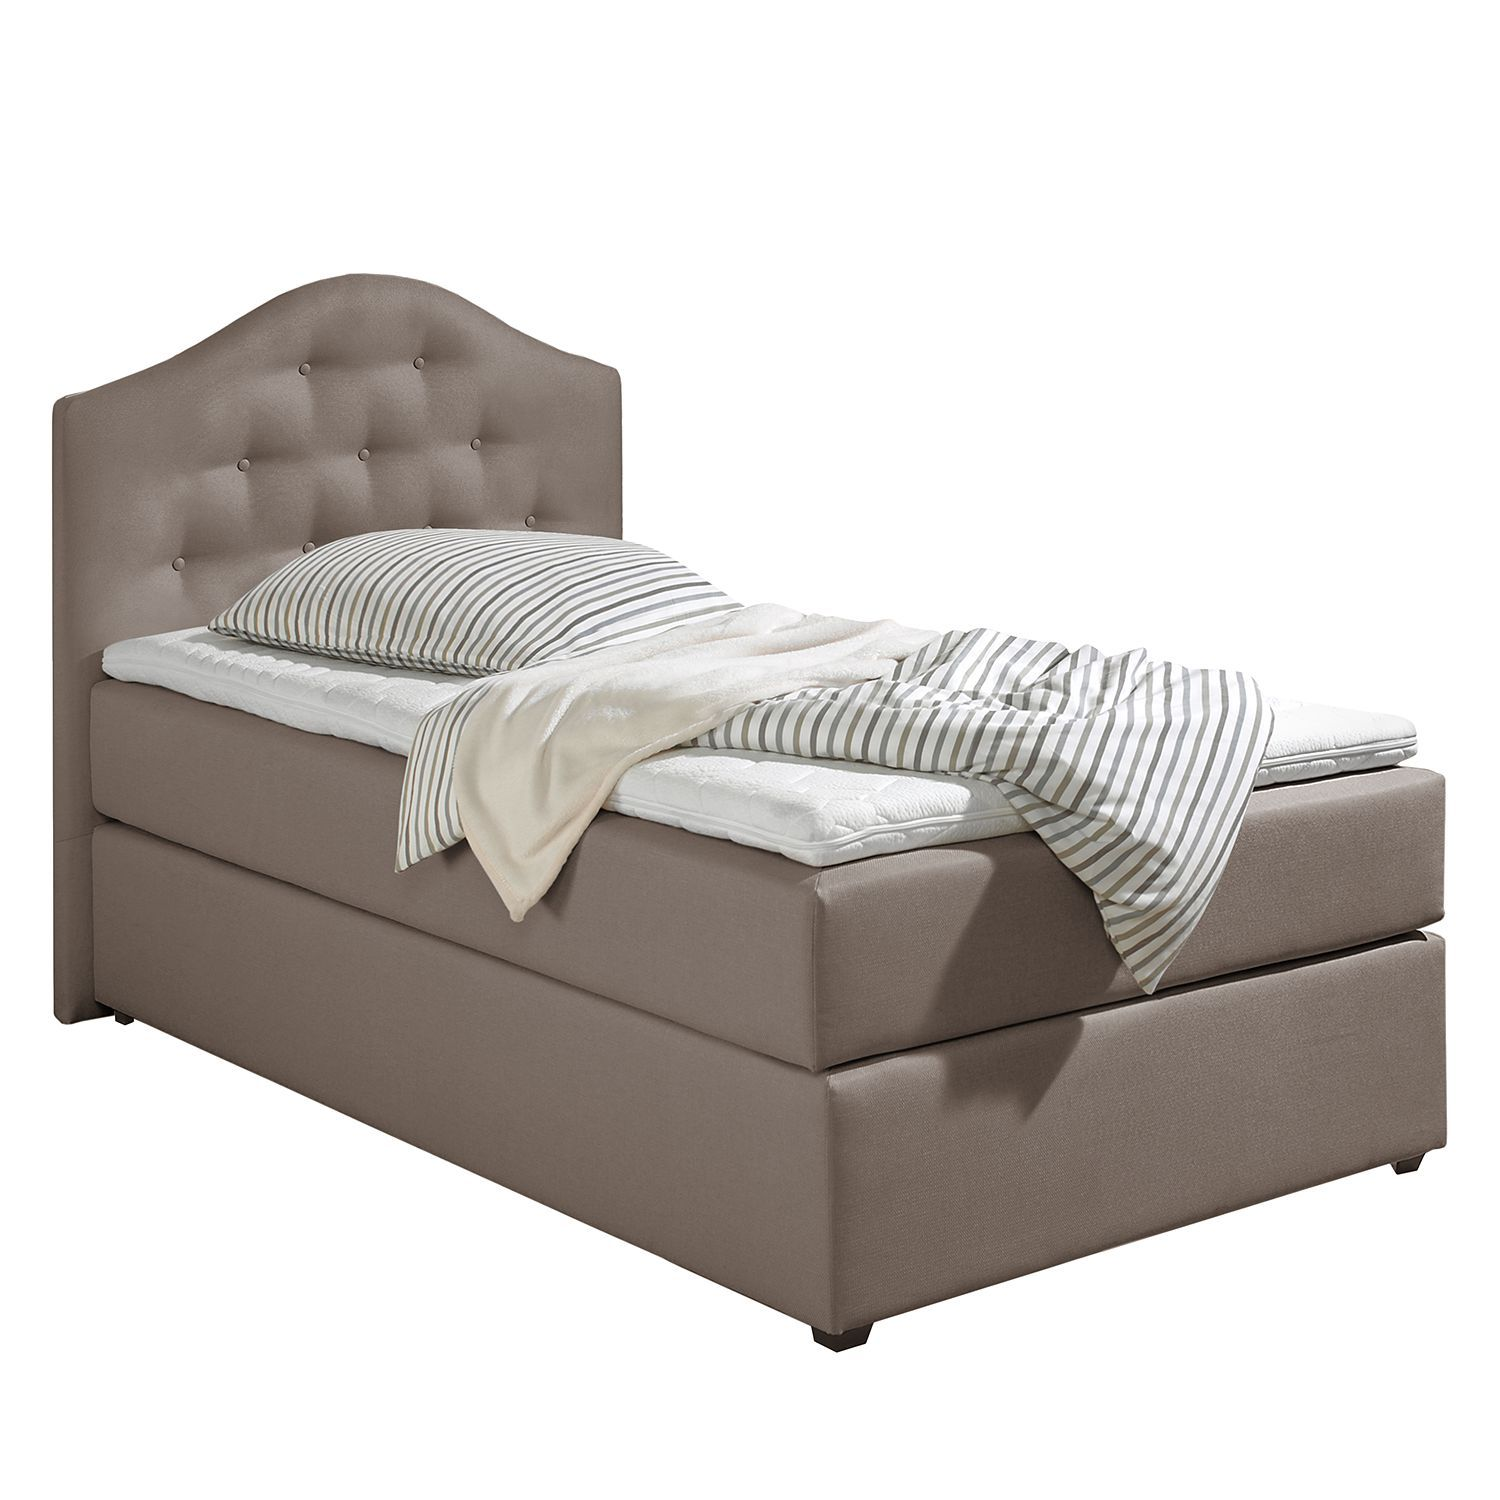 Boxspringbett Ansmark Products Bed Frame Bed Bed Furniture